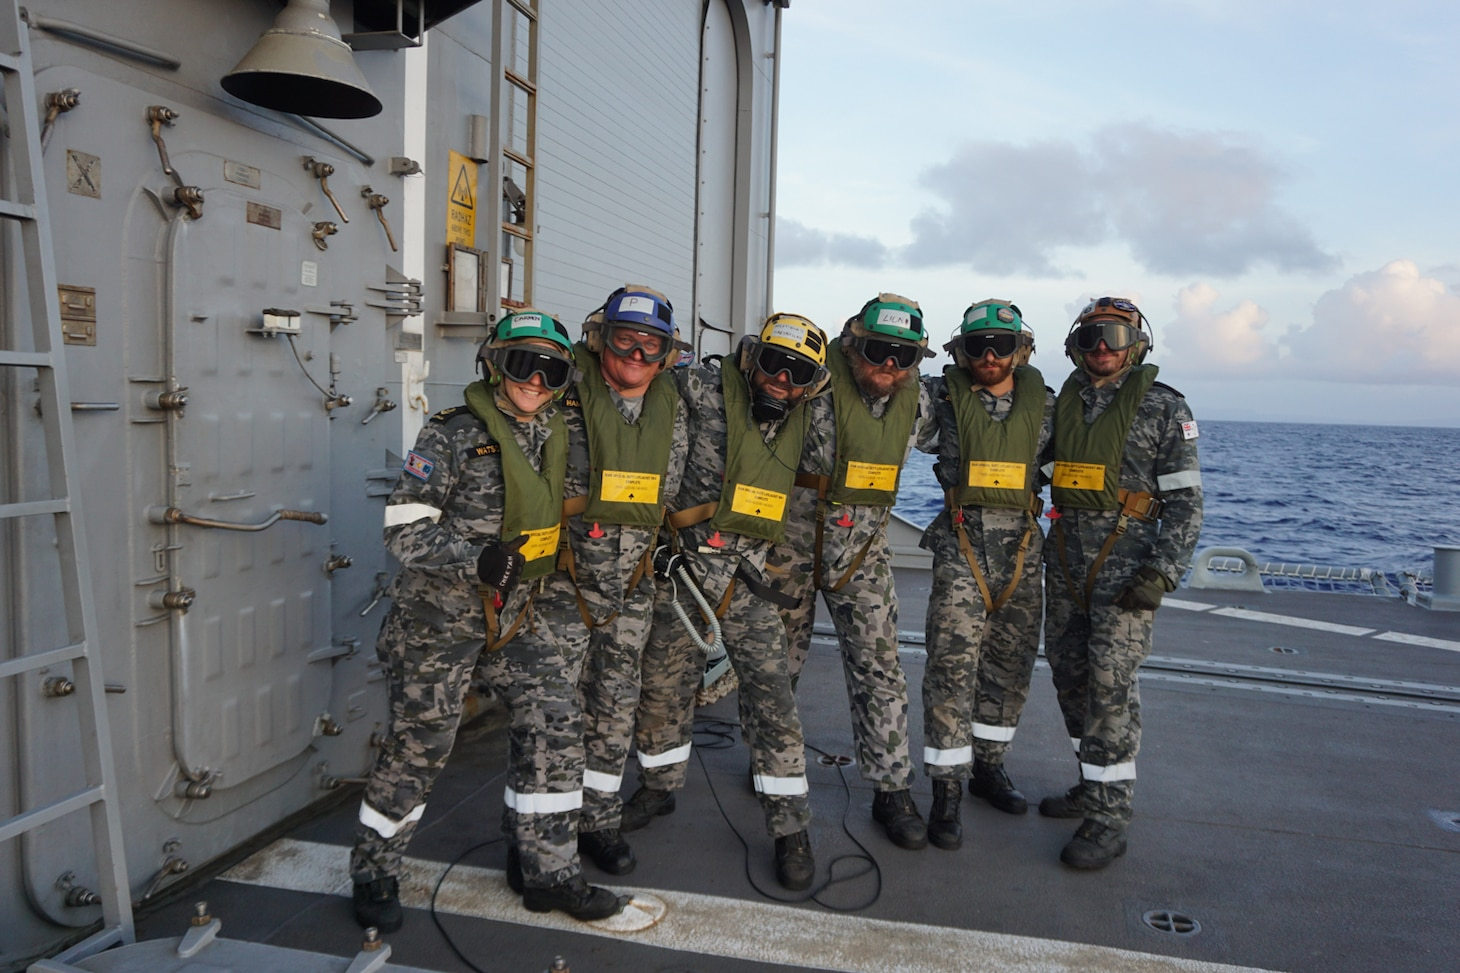 """The flight deck crew of the Royal Australian Navy guided-missile frigate HMAS Melbourne (FFG 05) chock and chain an MH-60S Sea Hawk helicopter, assigned to the """"Island Knights"""" of Helicopter Sea Combat Squadron (HSC) 25 to Melbourne's flight deck. HSC-25 provides a multi-mission rotary wing capability for units in the U.S. 7th Fleet area of operations and maintains a Guam-based 24-hour search-and-rescue and medical evacuation capability, directly supporting U.S. Coast Guard and Joint Region Marianas. HSC-25 is the Navy's only forward-deployed MH-60S expeditionary squadron."""